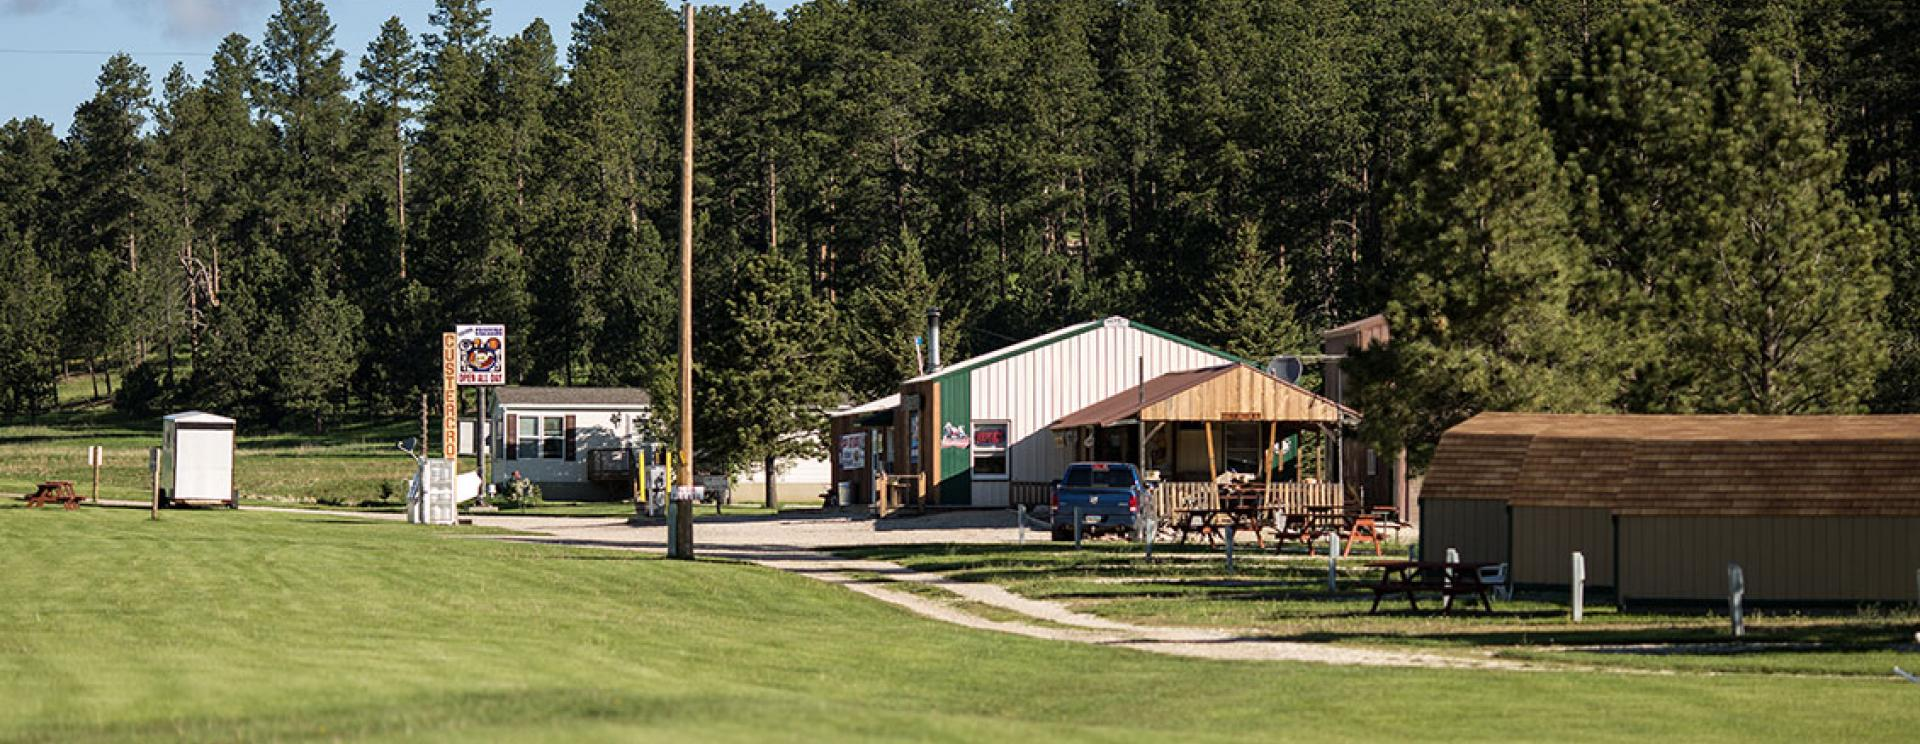 Custer Crossing Campground